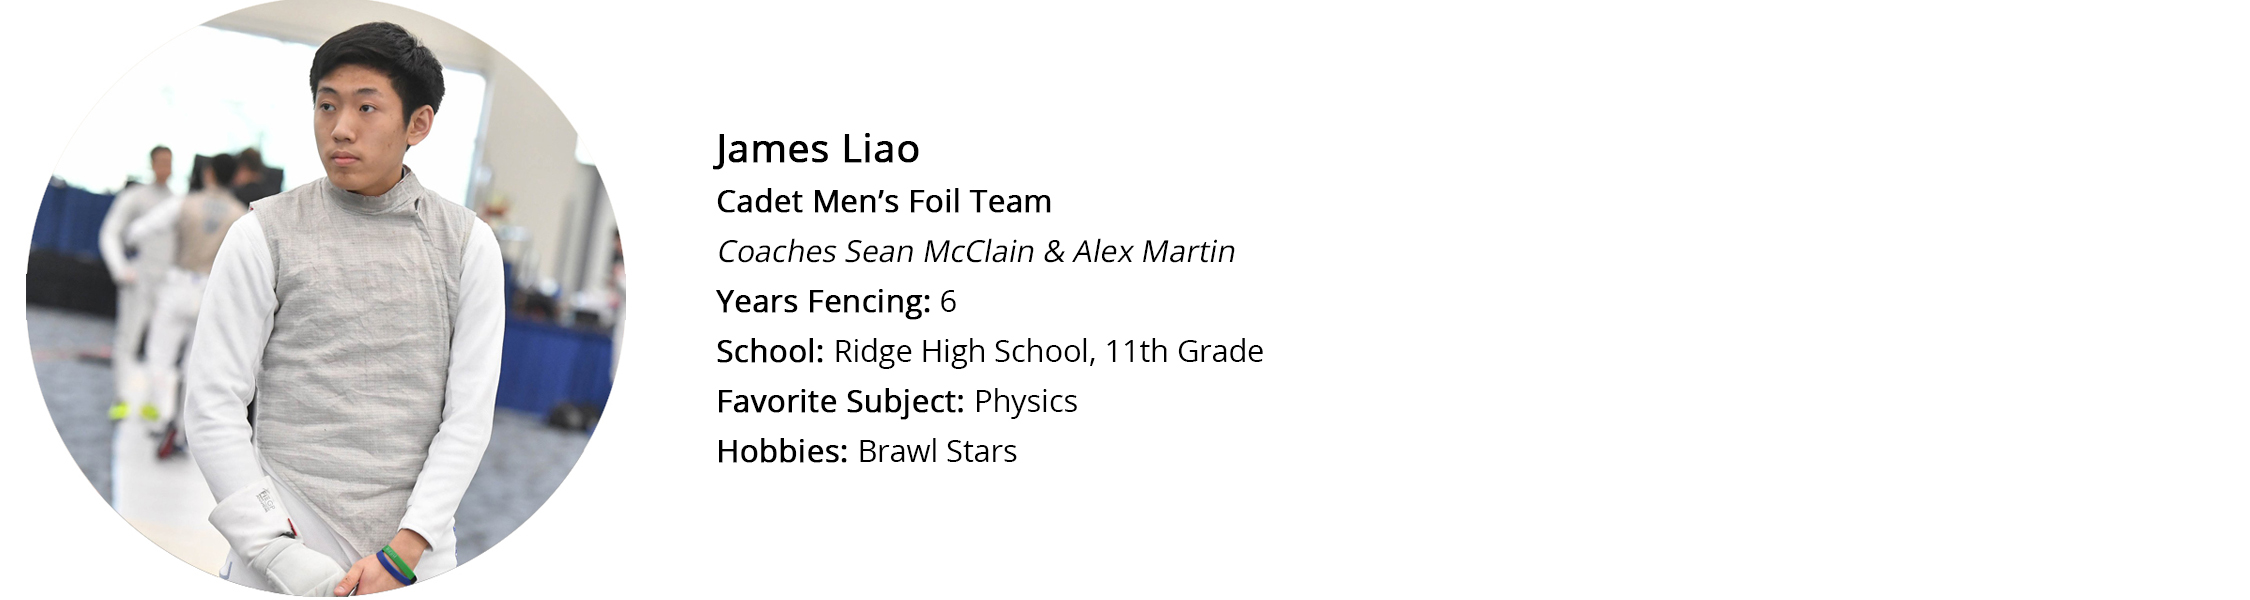 James Liao Profile